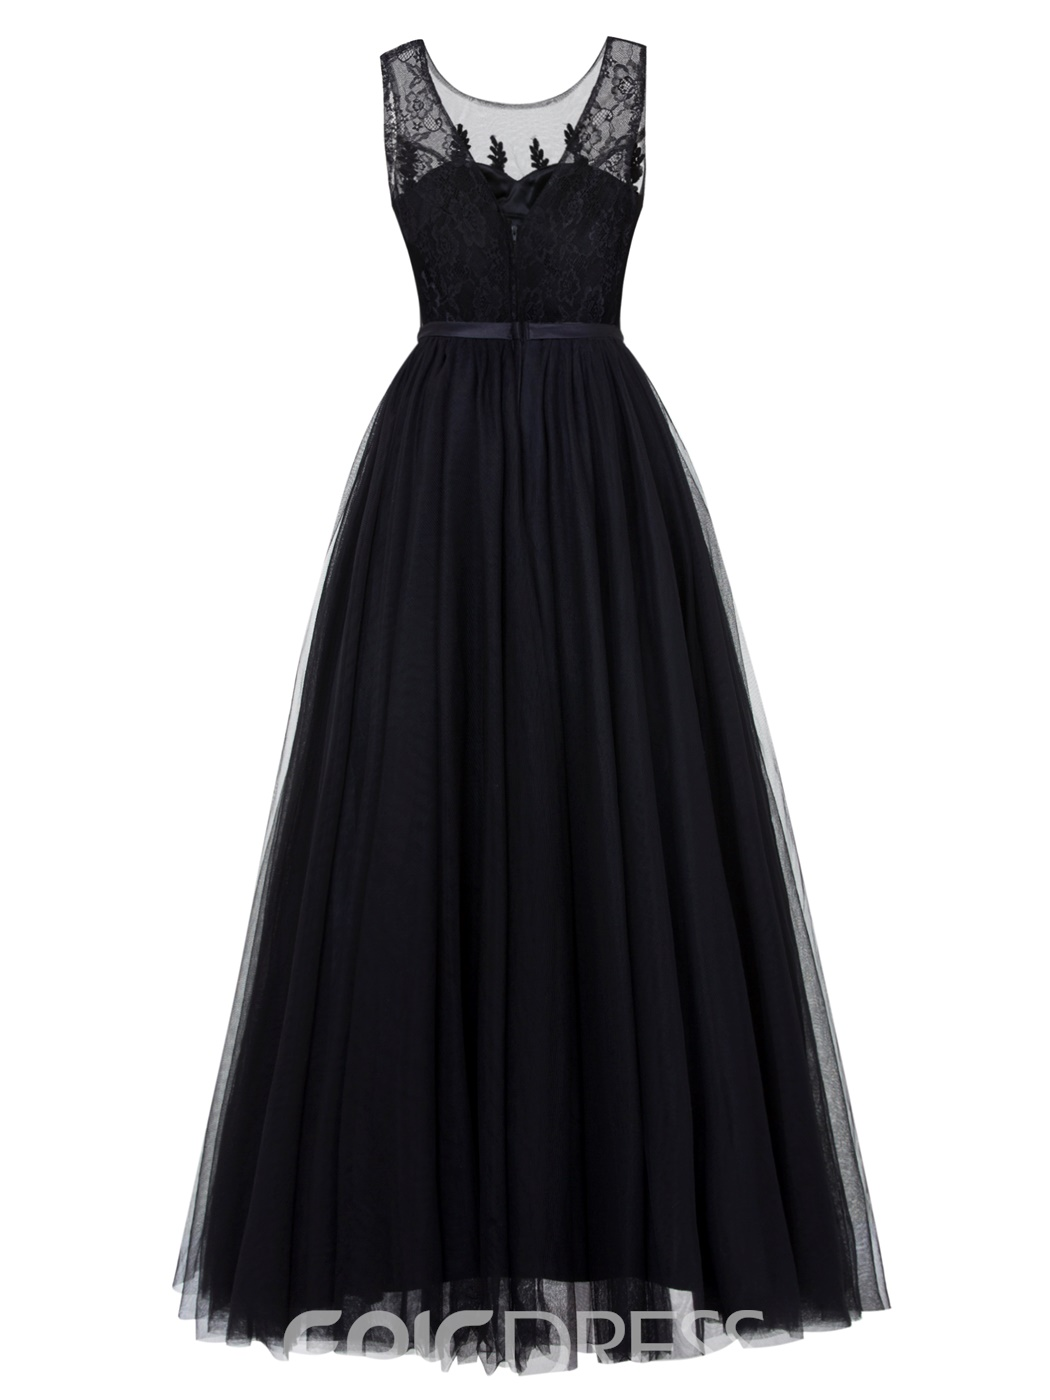 Ericdress A Line Tulle Floor Length Prom Dress With Applique And Beadings